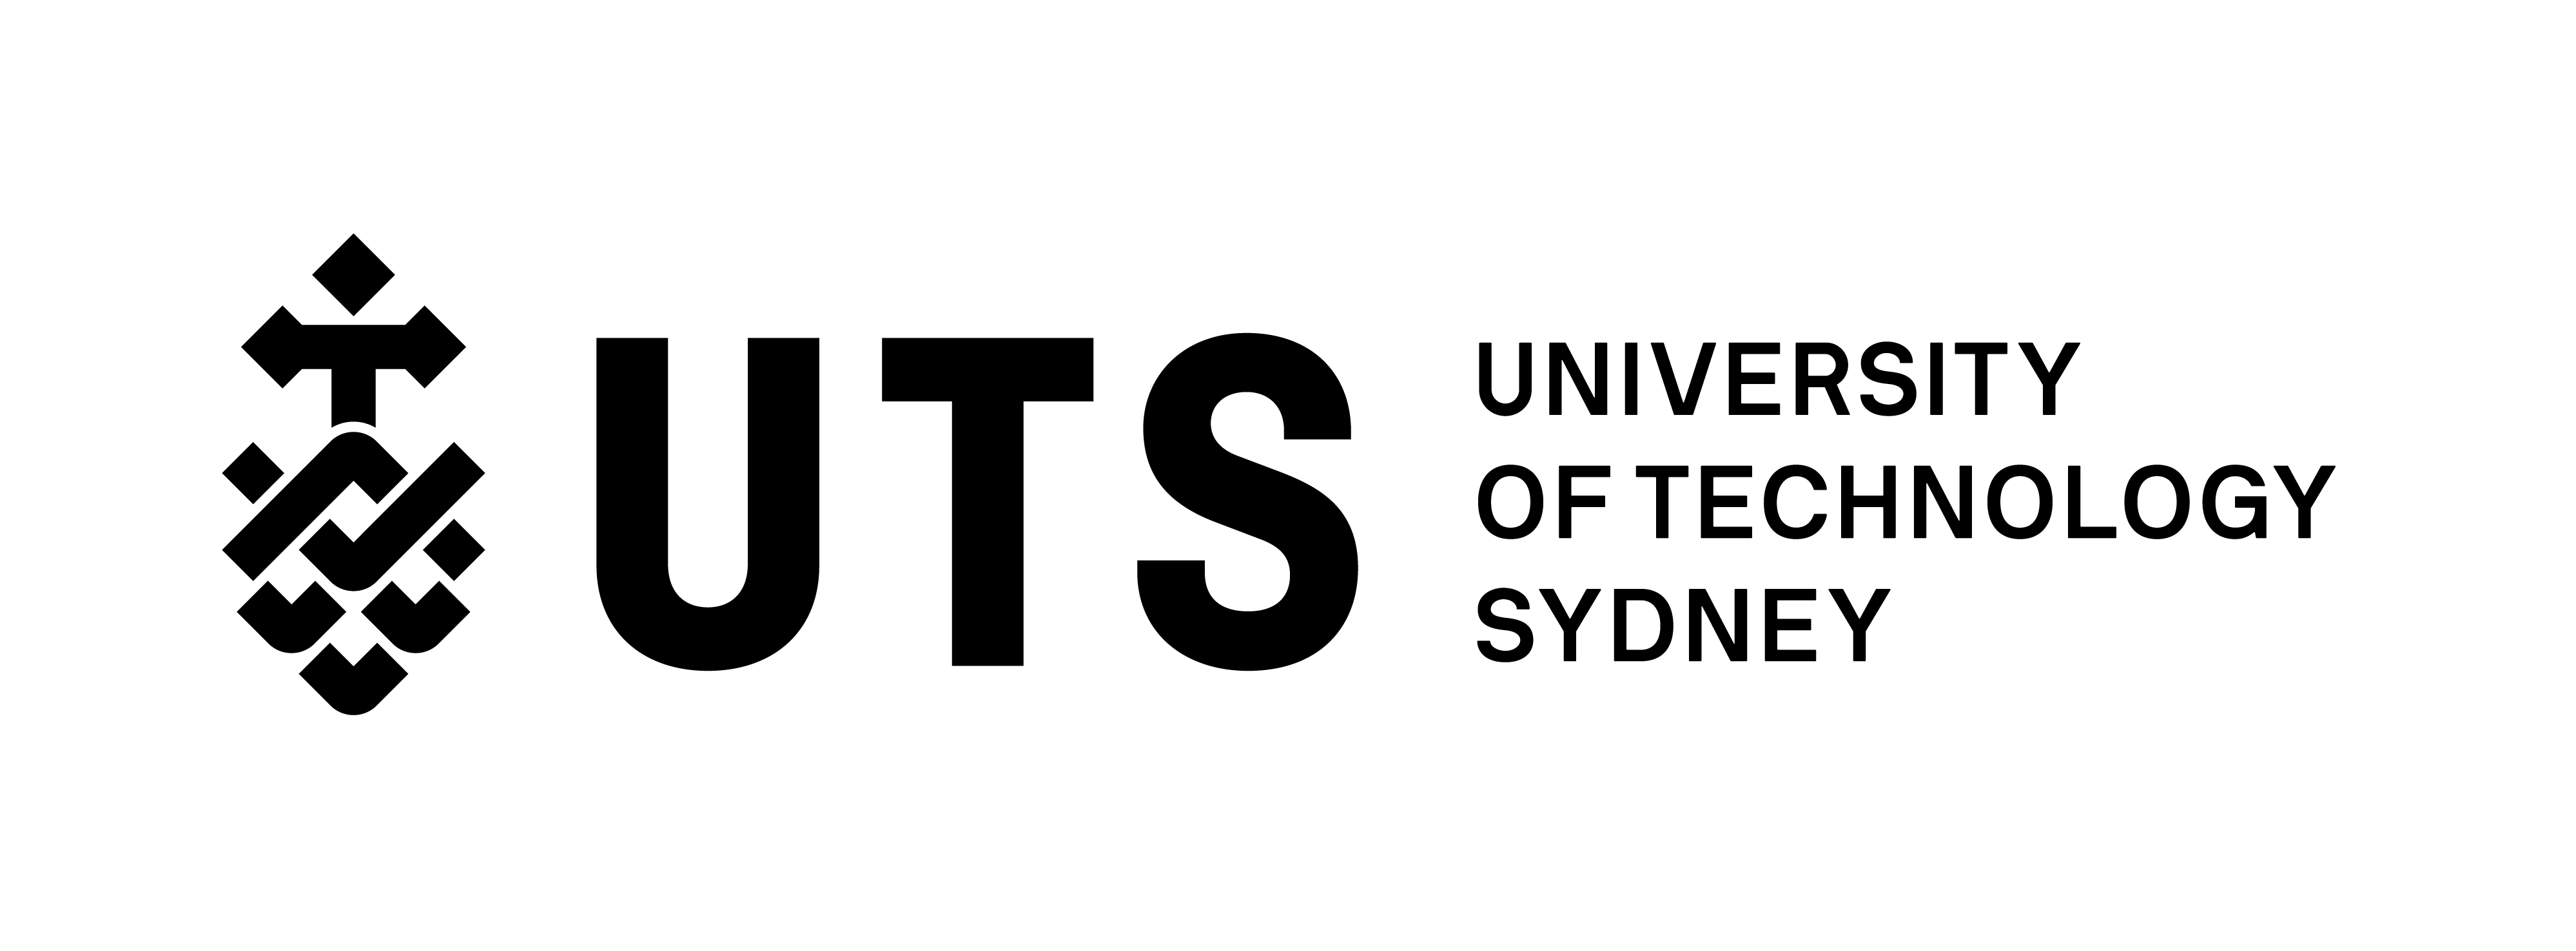 University of Technology Sydney - Bachelor of Advanced Science